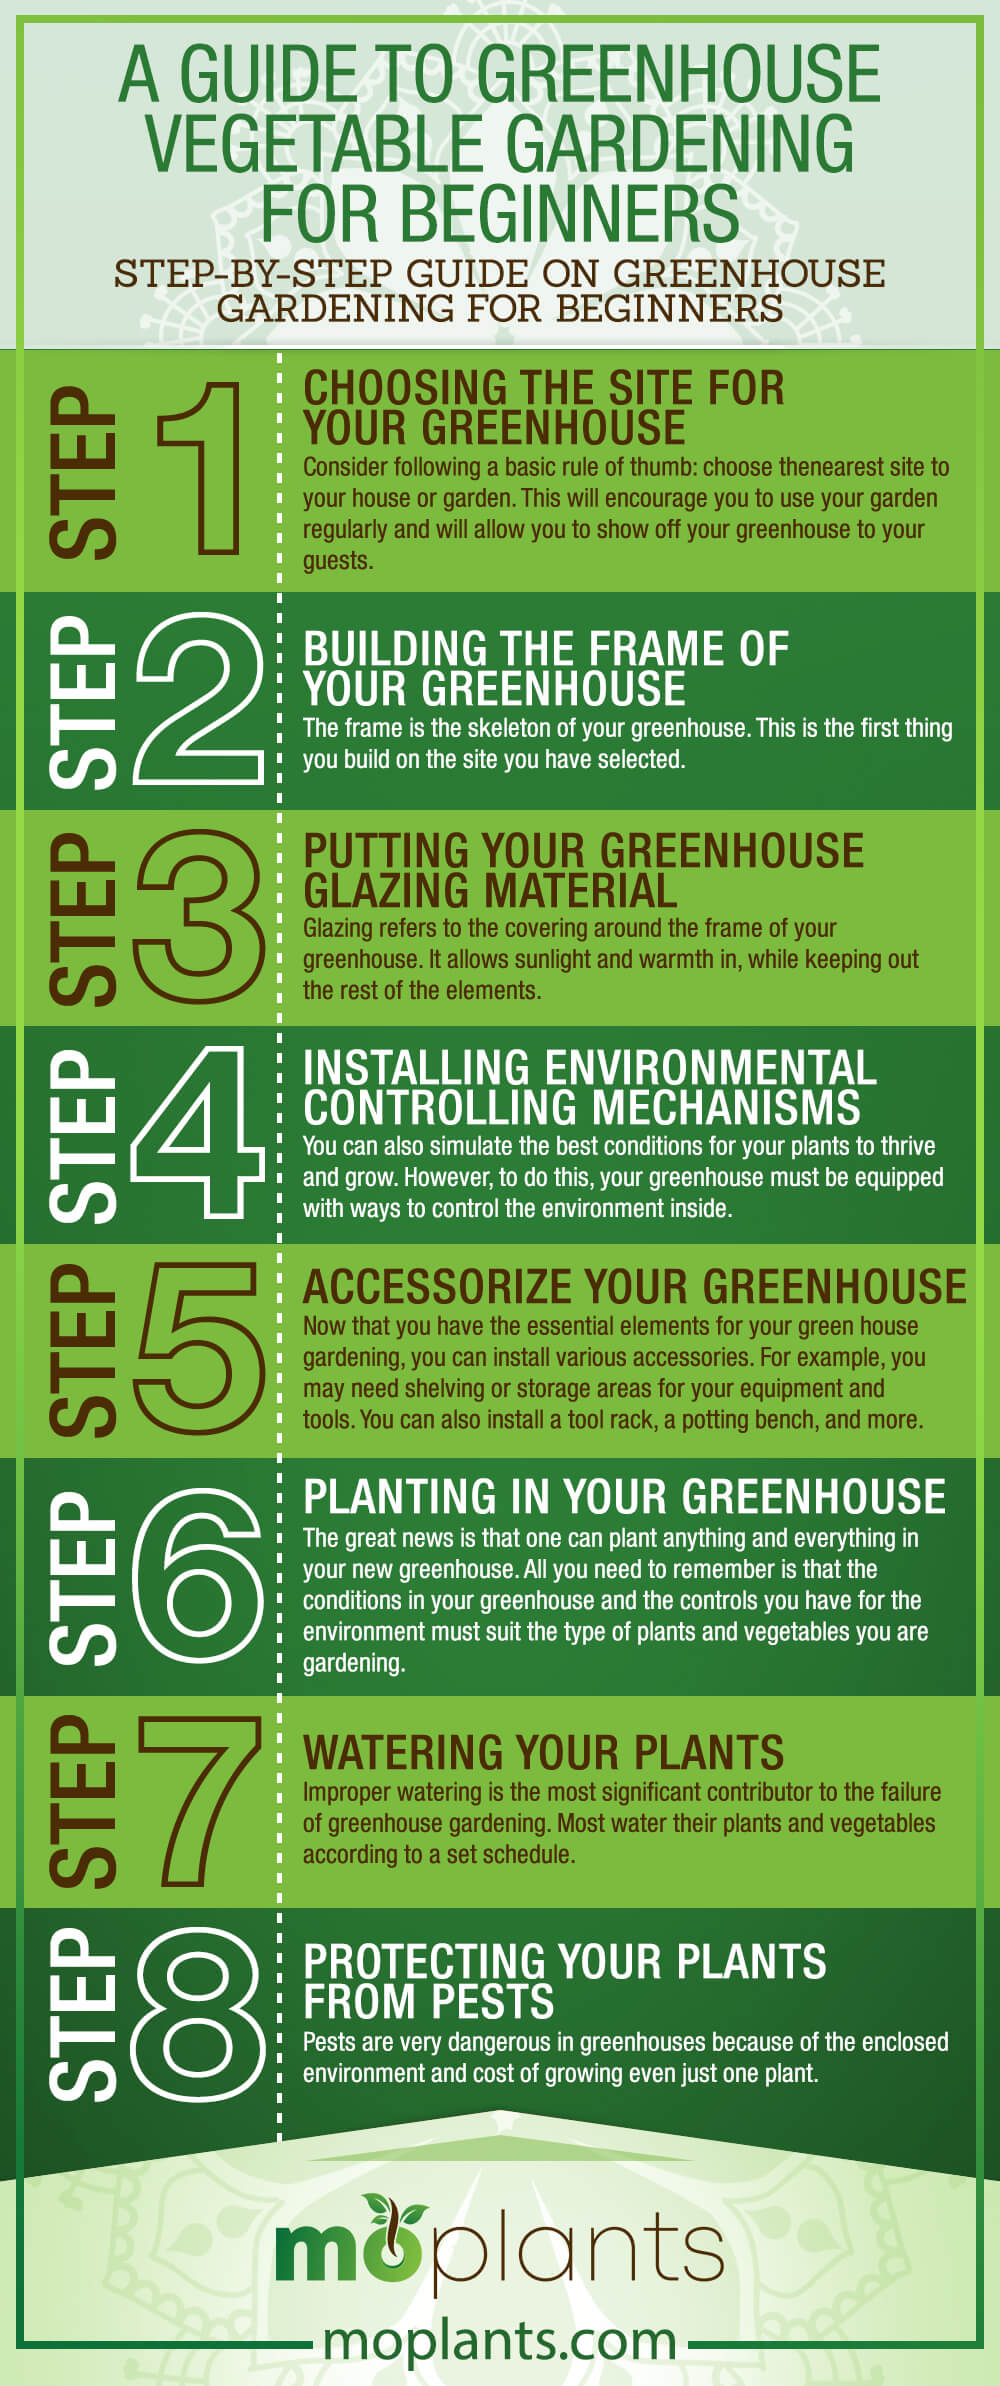 Greenhouse Vegetable Gardening for Beginners Infographic